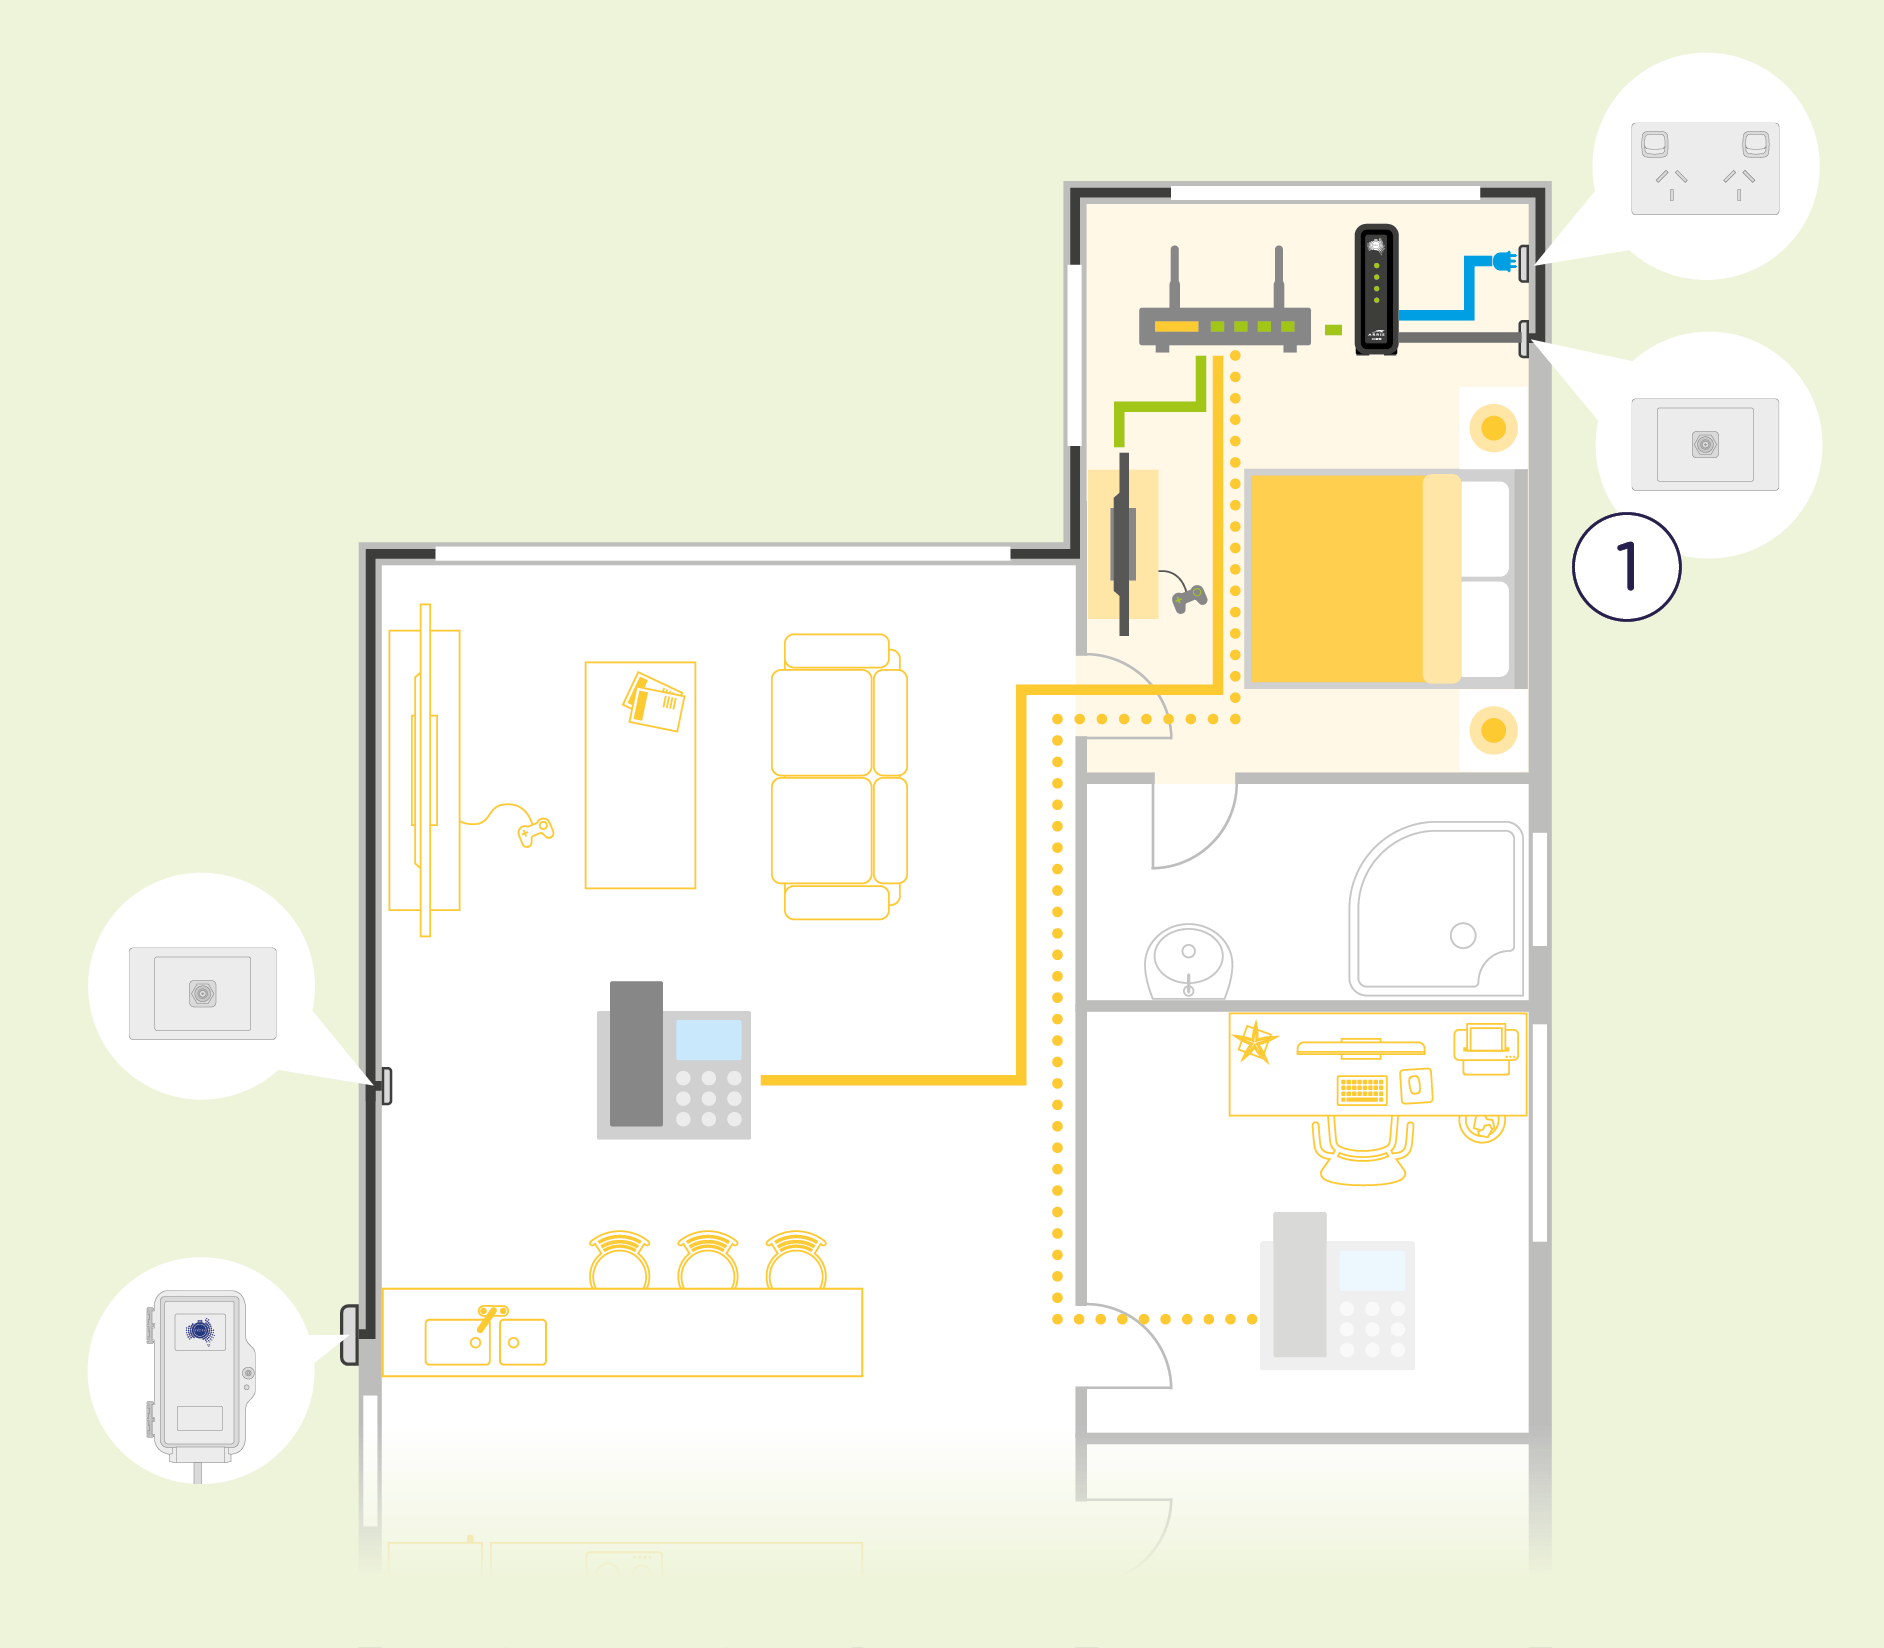 nbn wall outlet positioning